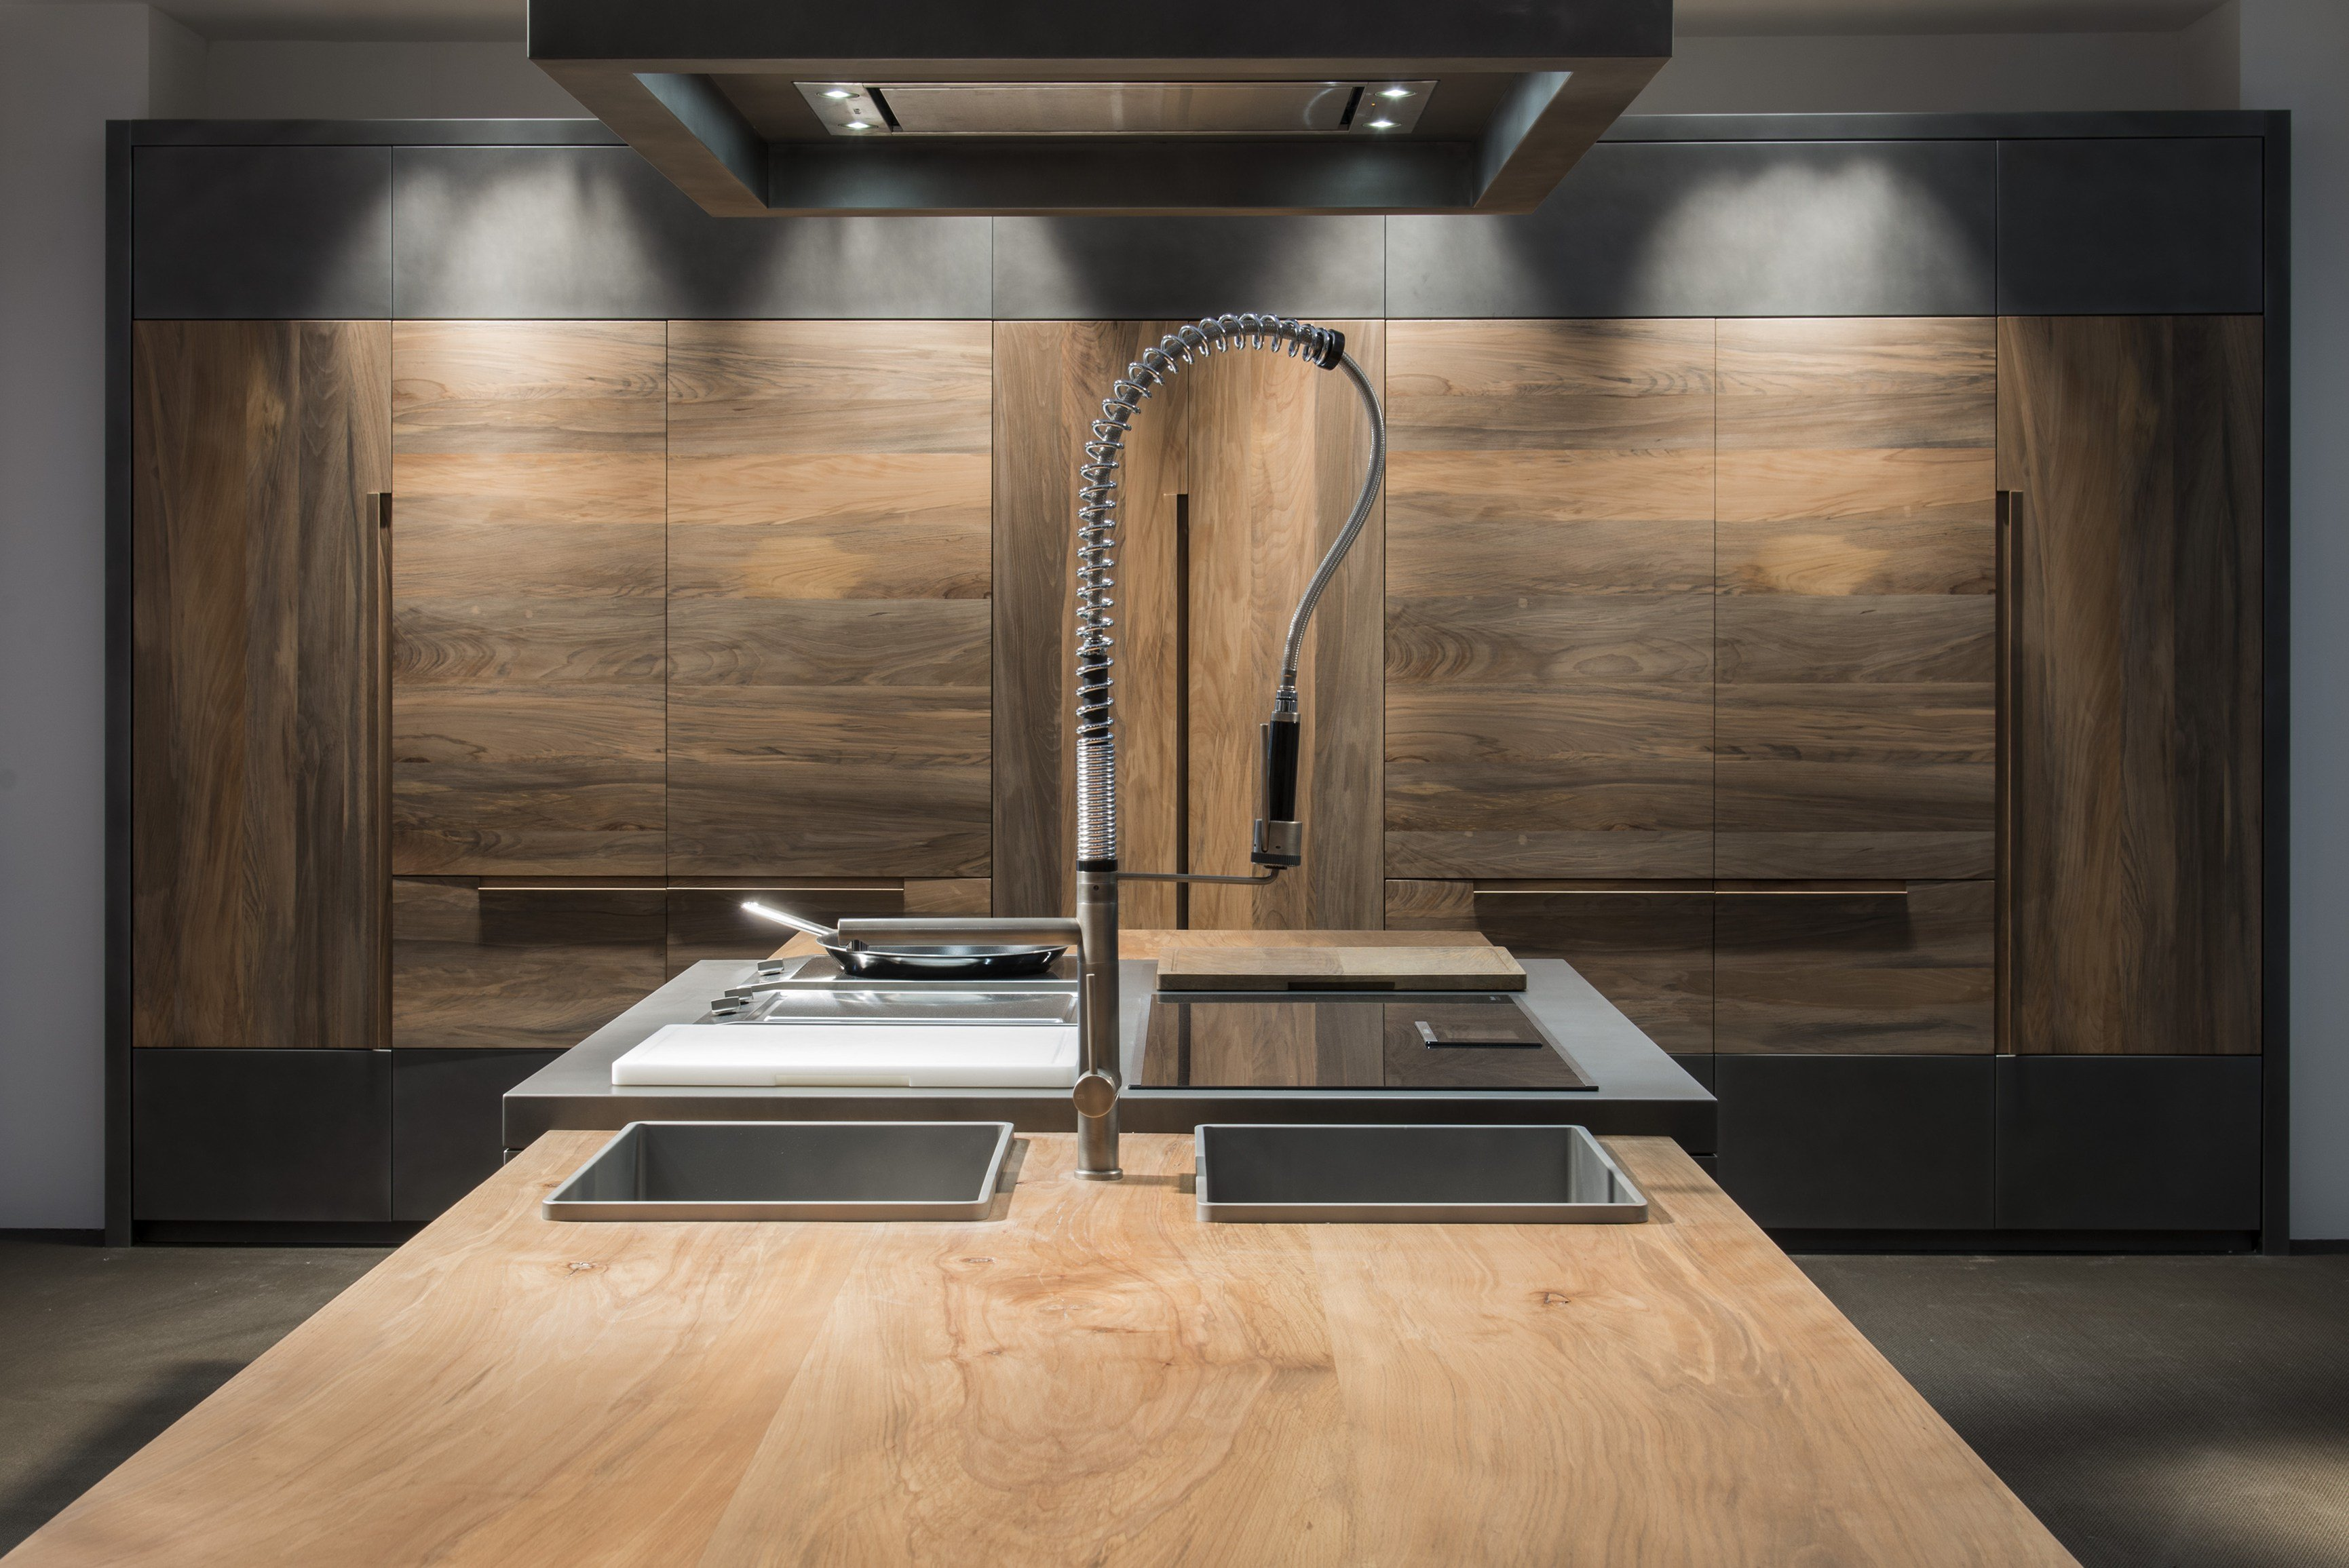 Beech kitchen with island essence by toncelli cucine - Cucine toncelli ...